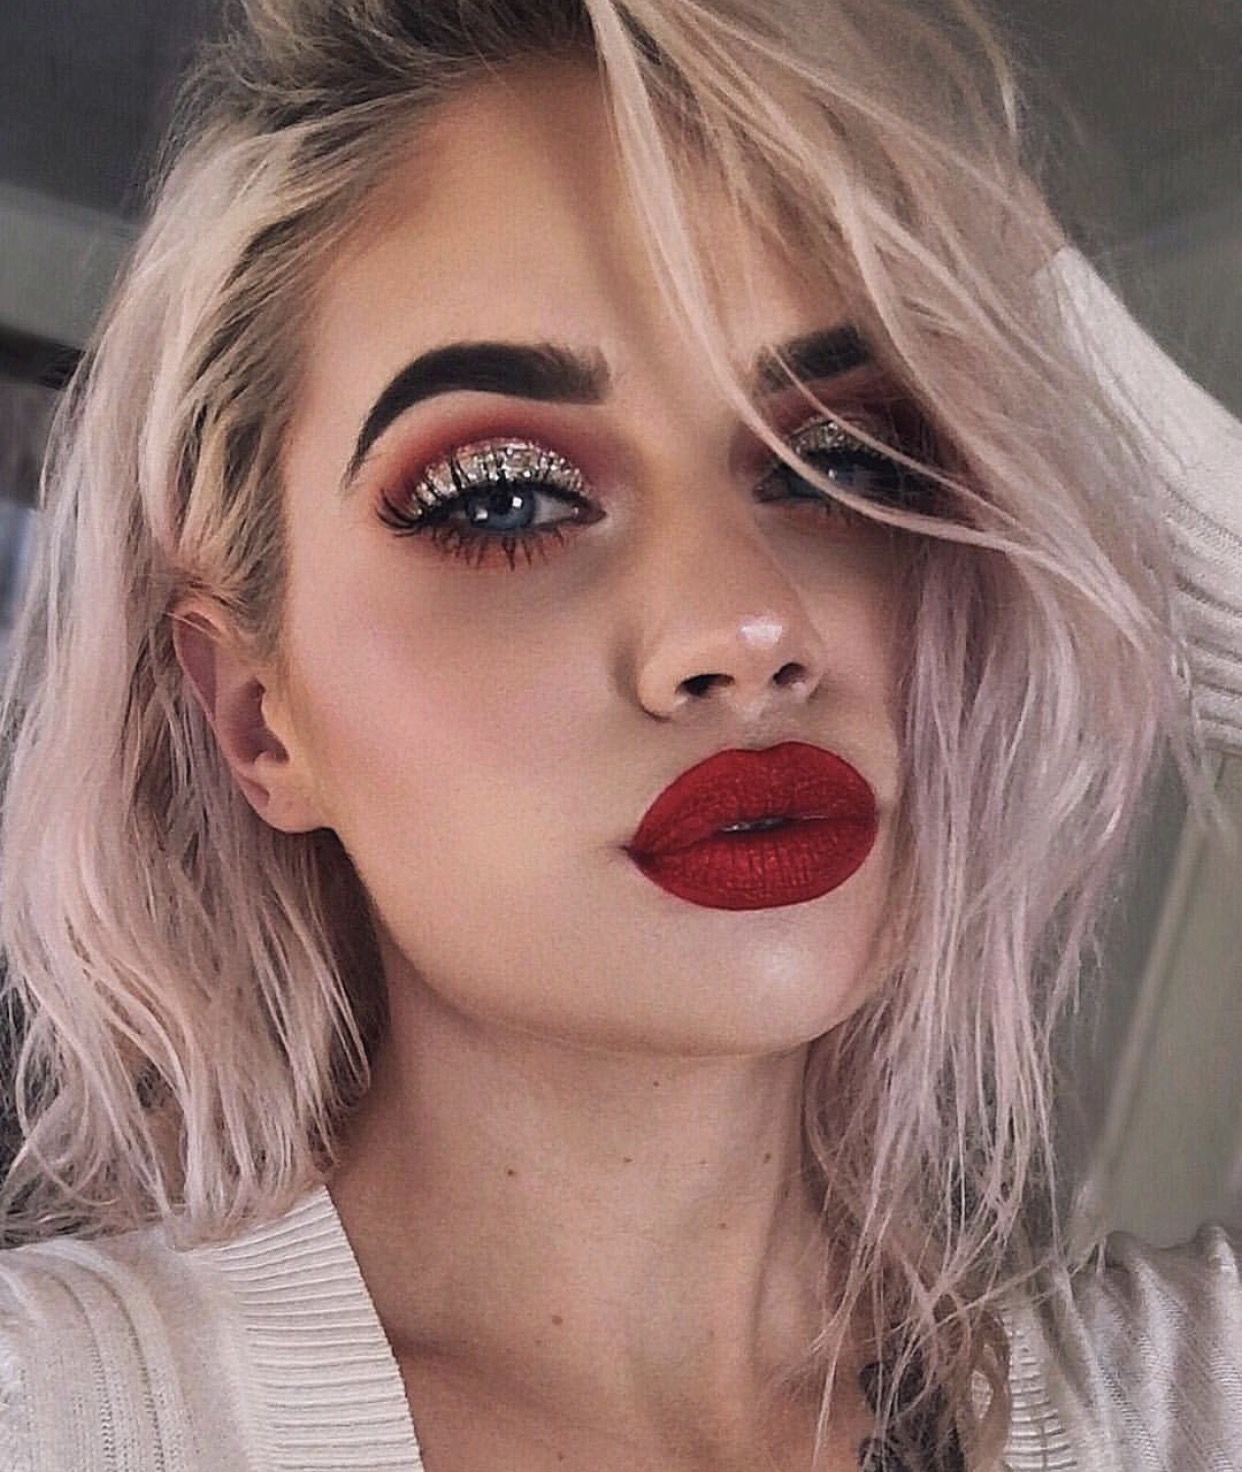 I can see her real lip line and her brows are too dark but this is